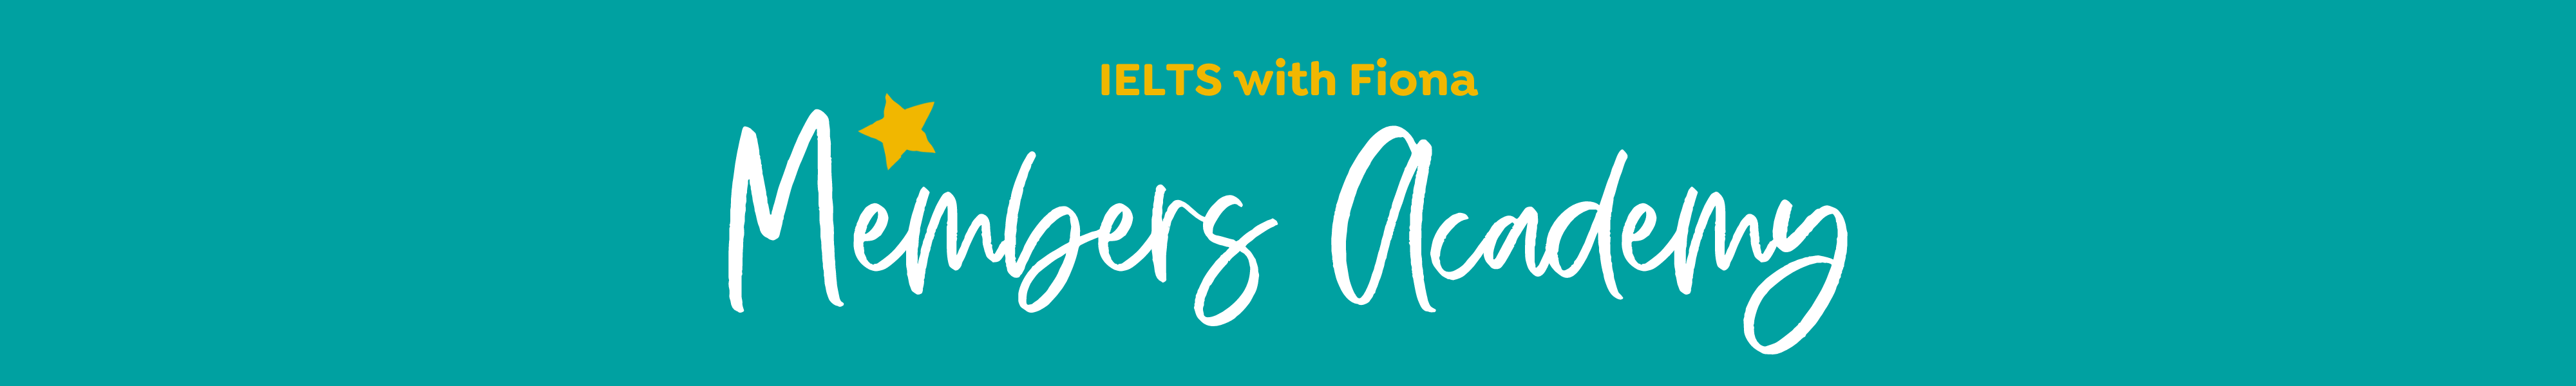 IELTS with Fiona Members Academy